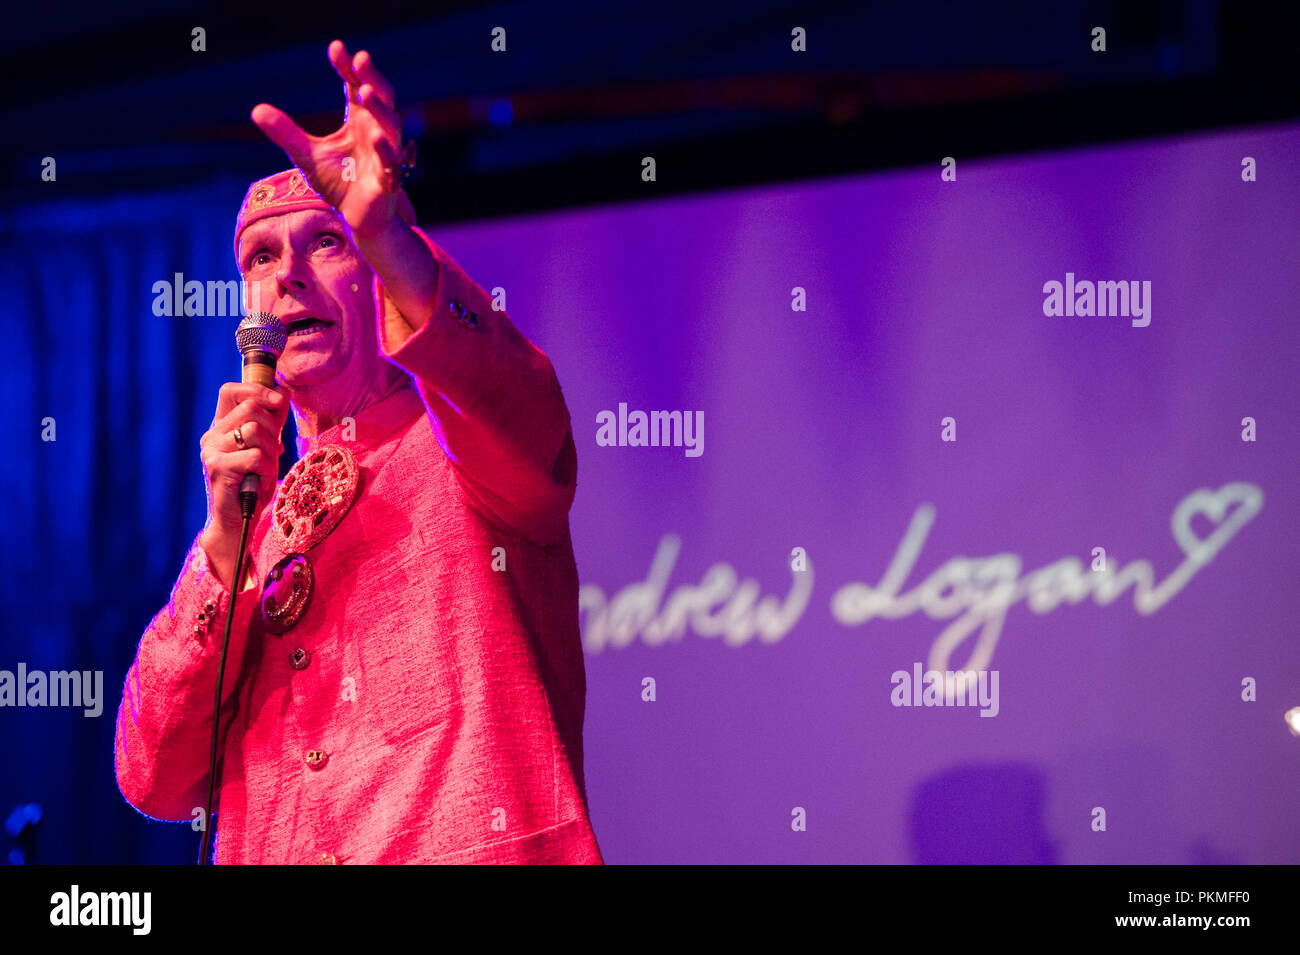 Andrew Logan:  English eccentric, sculptor, jeweller and performance artist,  founder of The Alternative Miss World, appearing at the Aberration Alternative Village Show Aberystwyth Arts Centre, Wales UK, Augusr 2018 - Stock Image